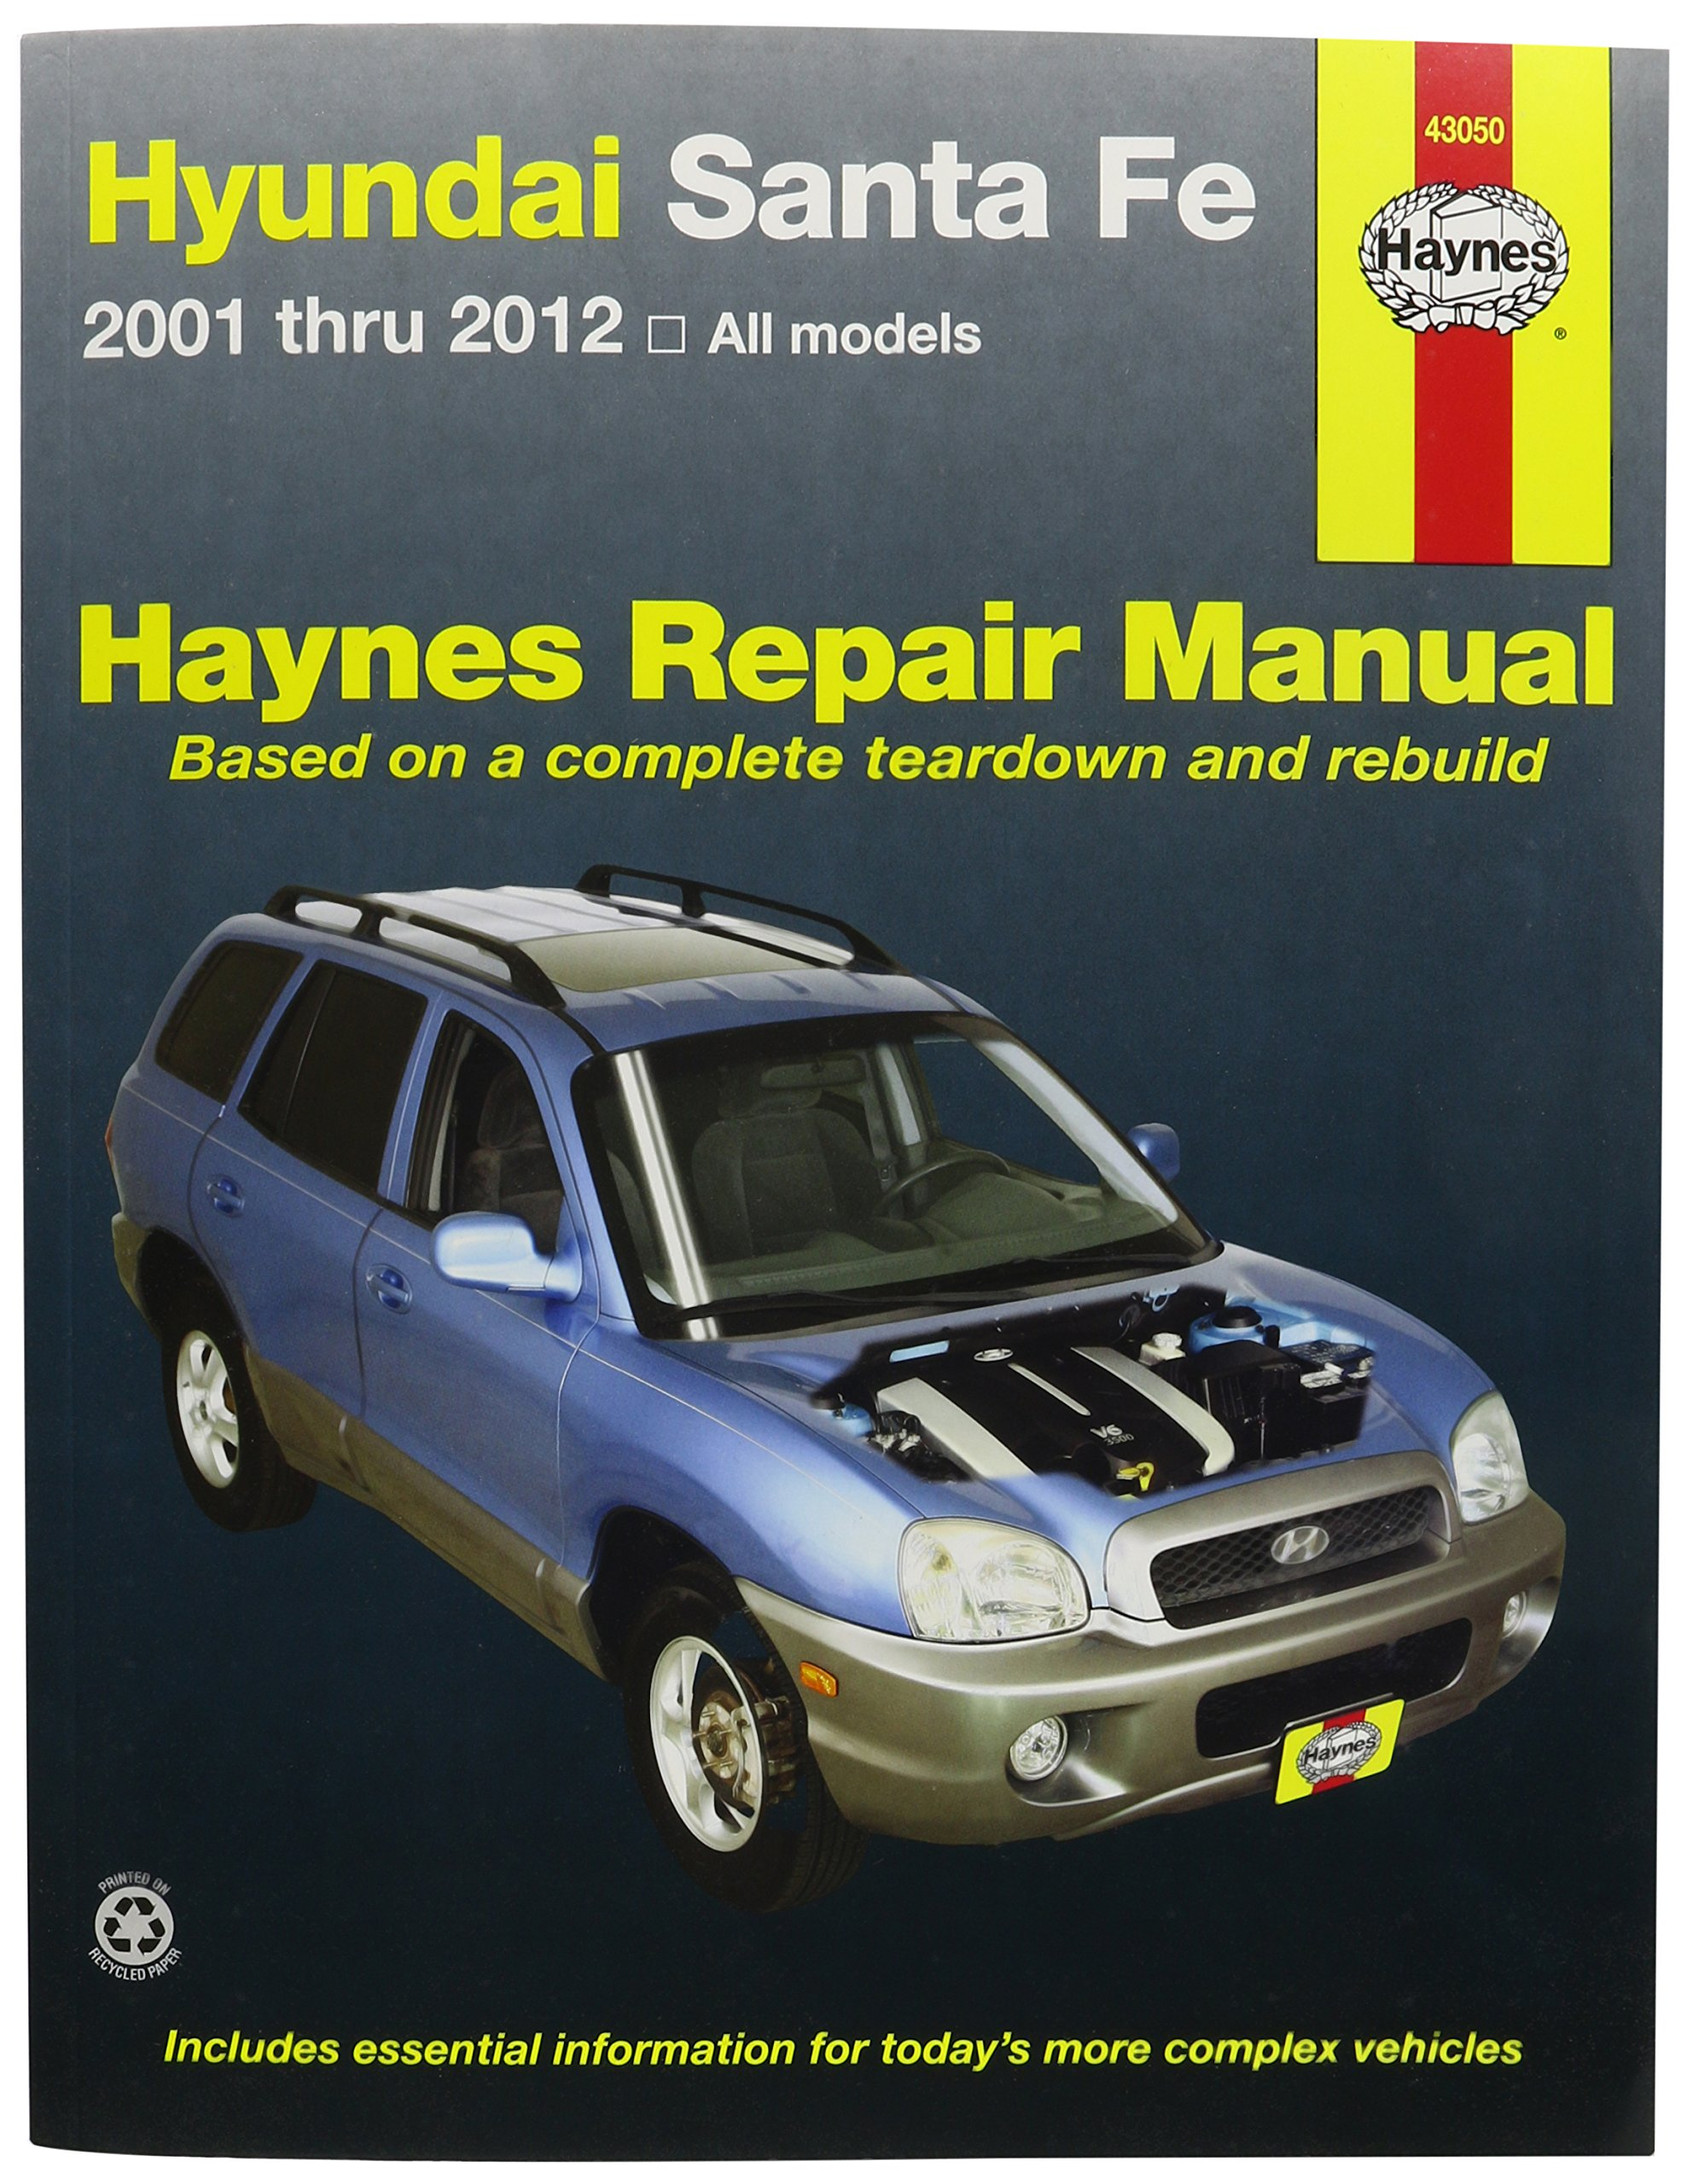 Haynes VC0S2_43050 Manuals 43050 Hyundai Sante Fe (2001-2012):  0038345430503: Amazon.com: Books